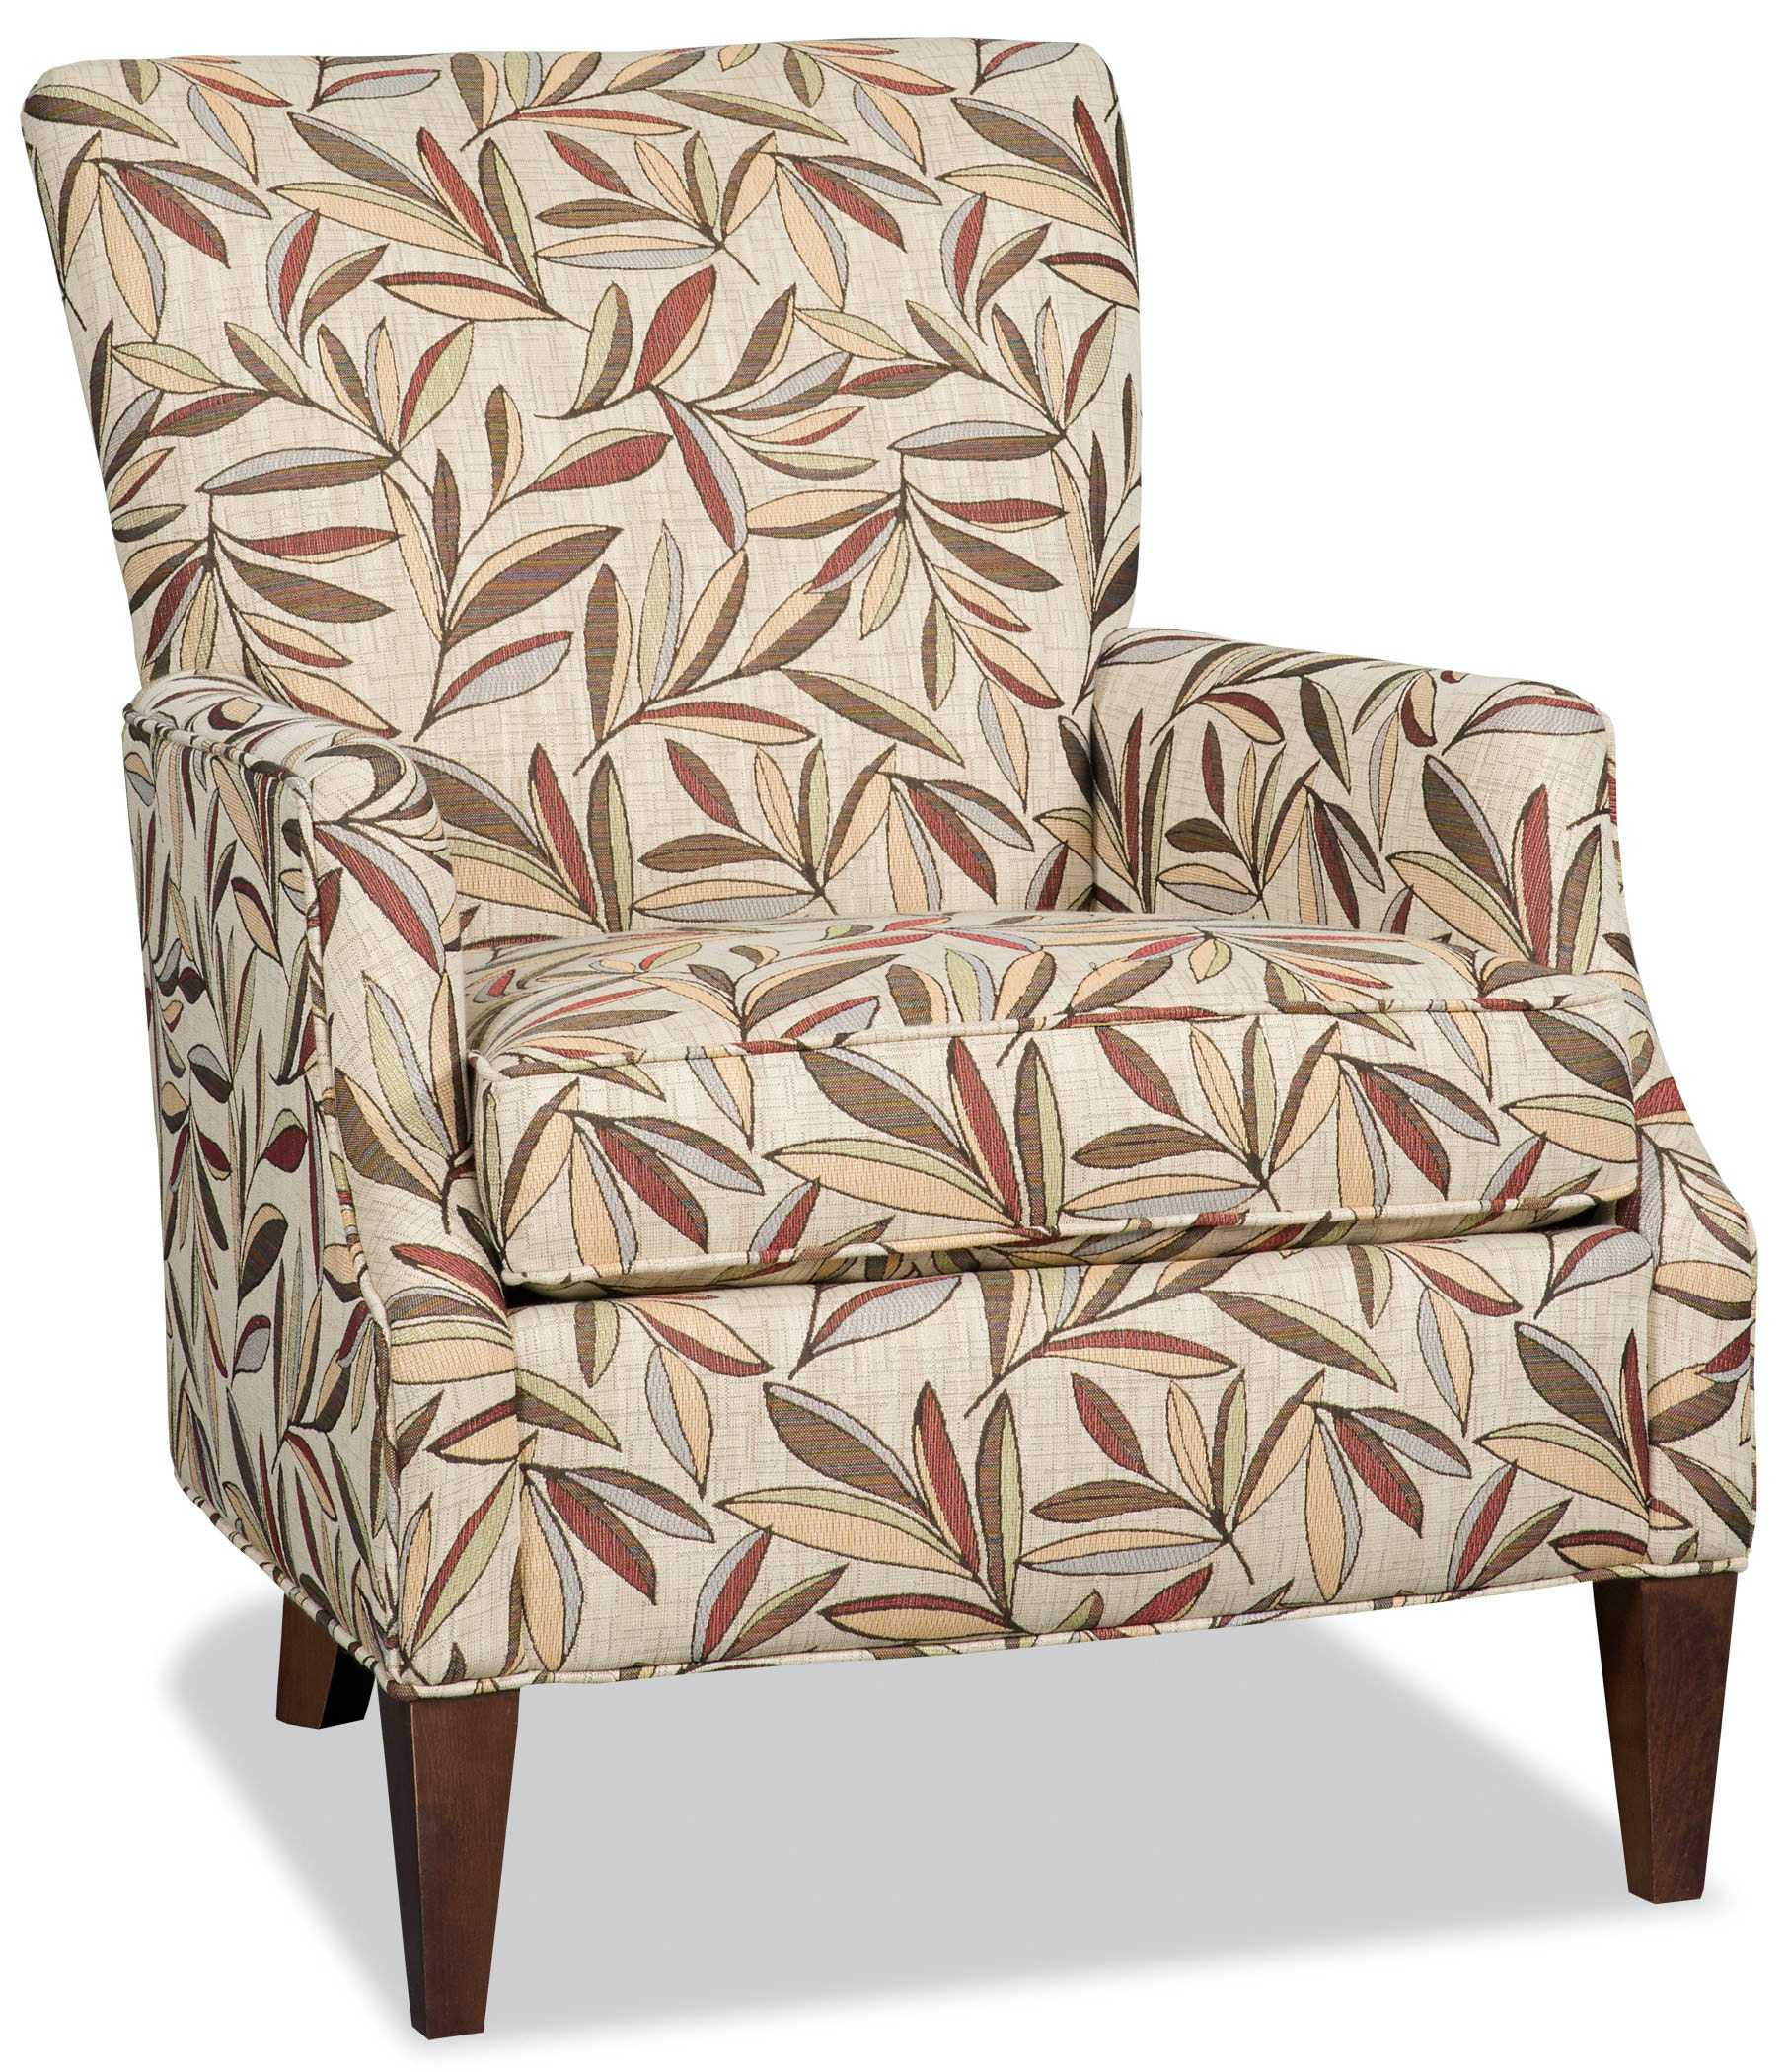 Sam Moore Living Room Asher Club Chair 1980 At Jernigan Furniture